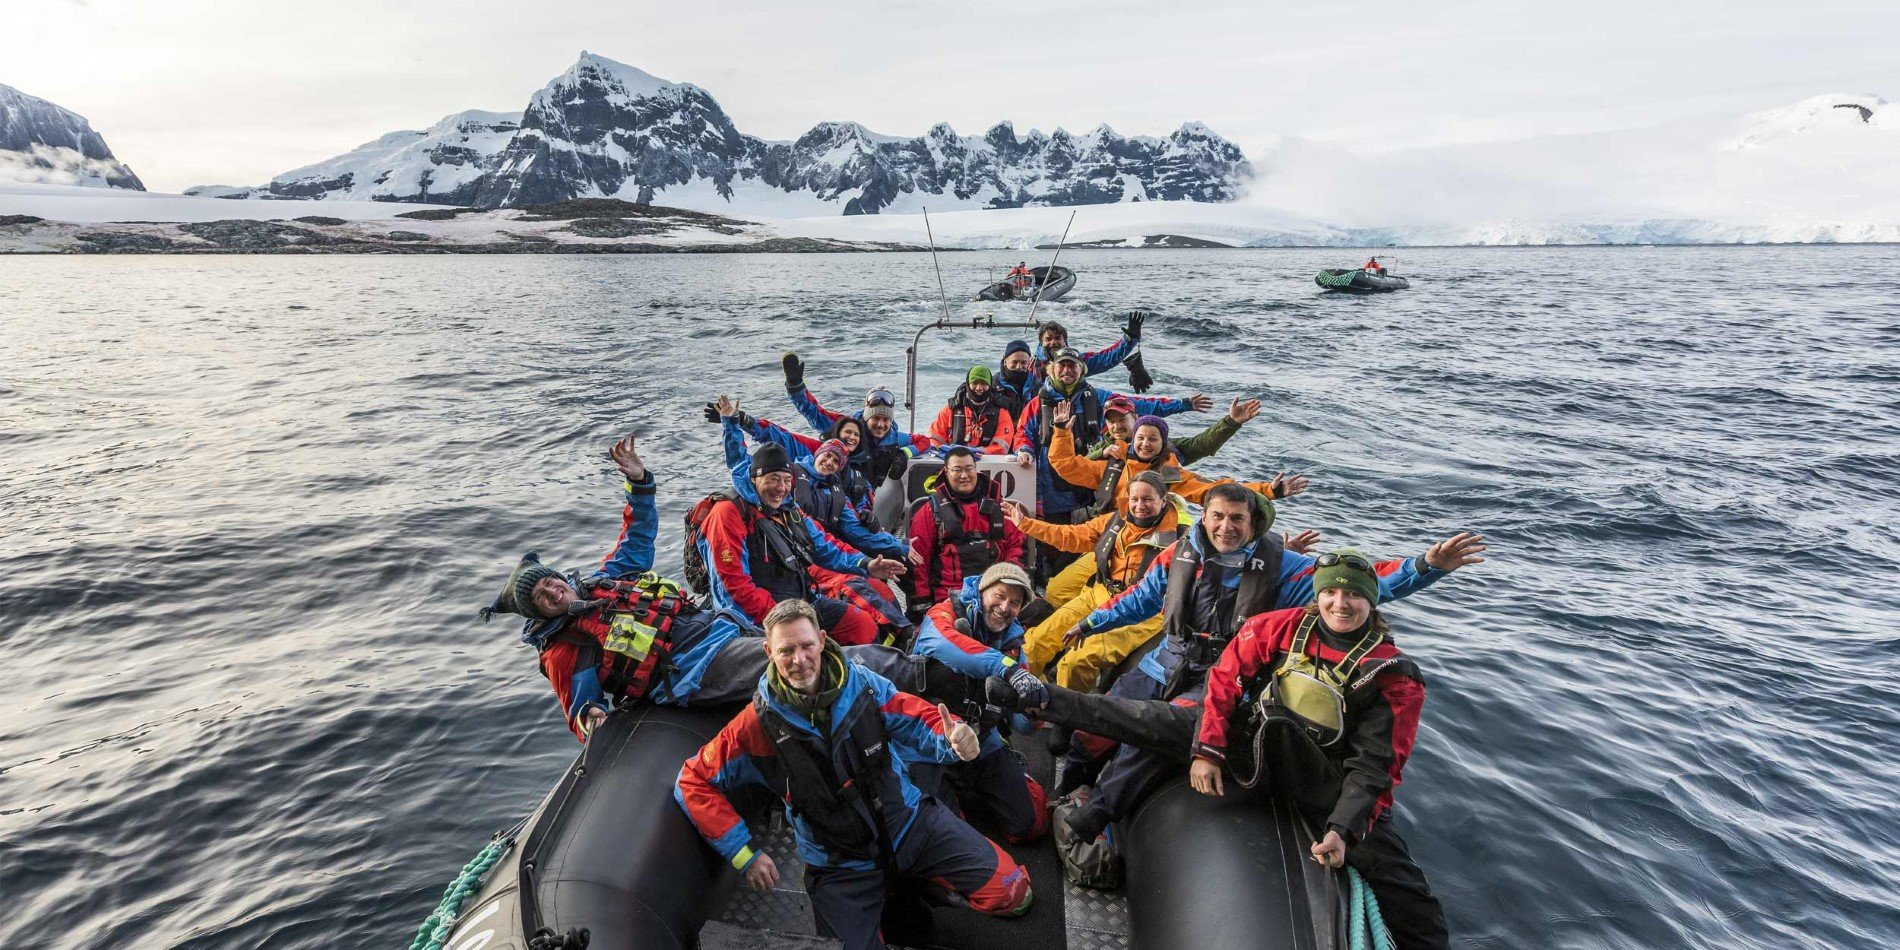 The Expedition Team cruising at Damoy Point, Antarctica